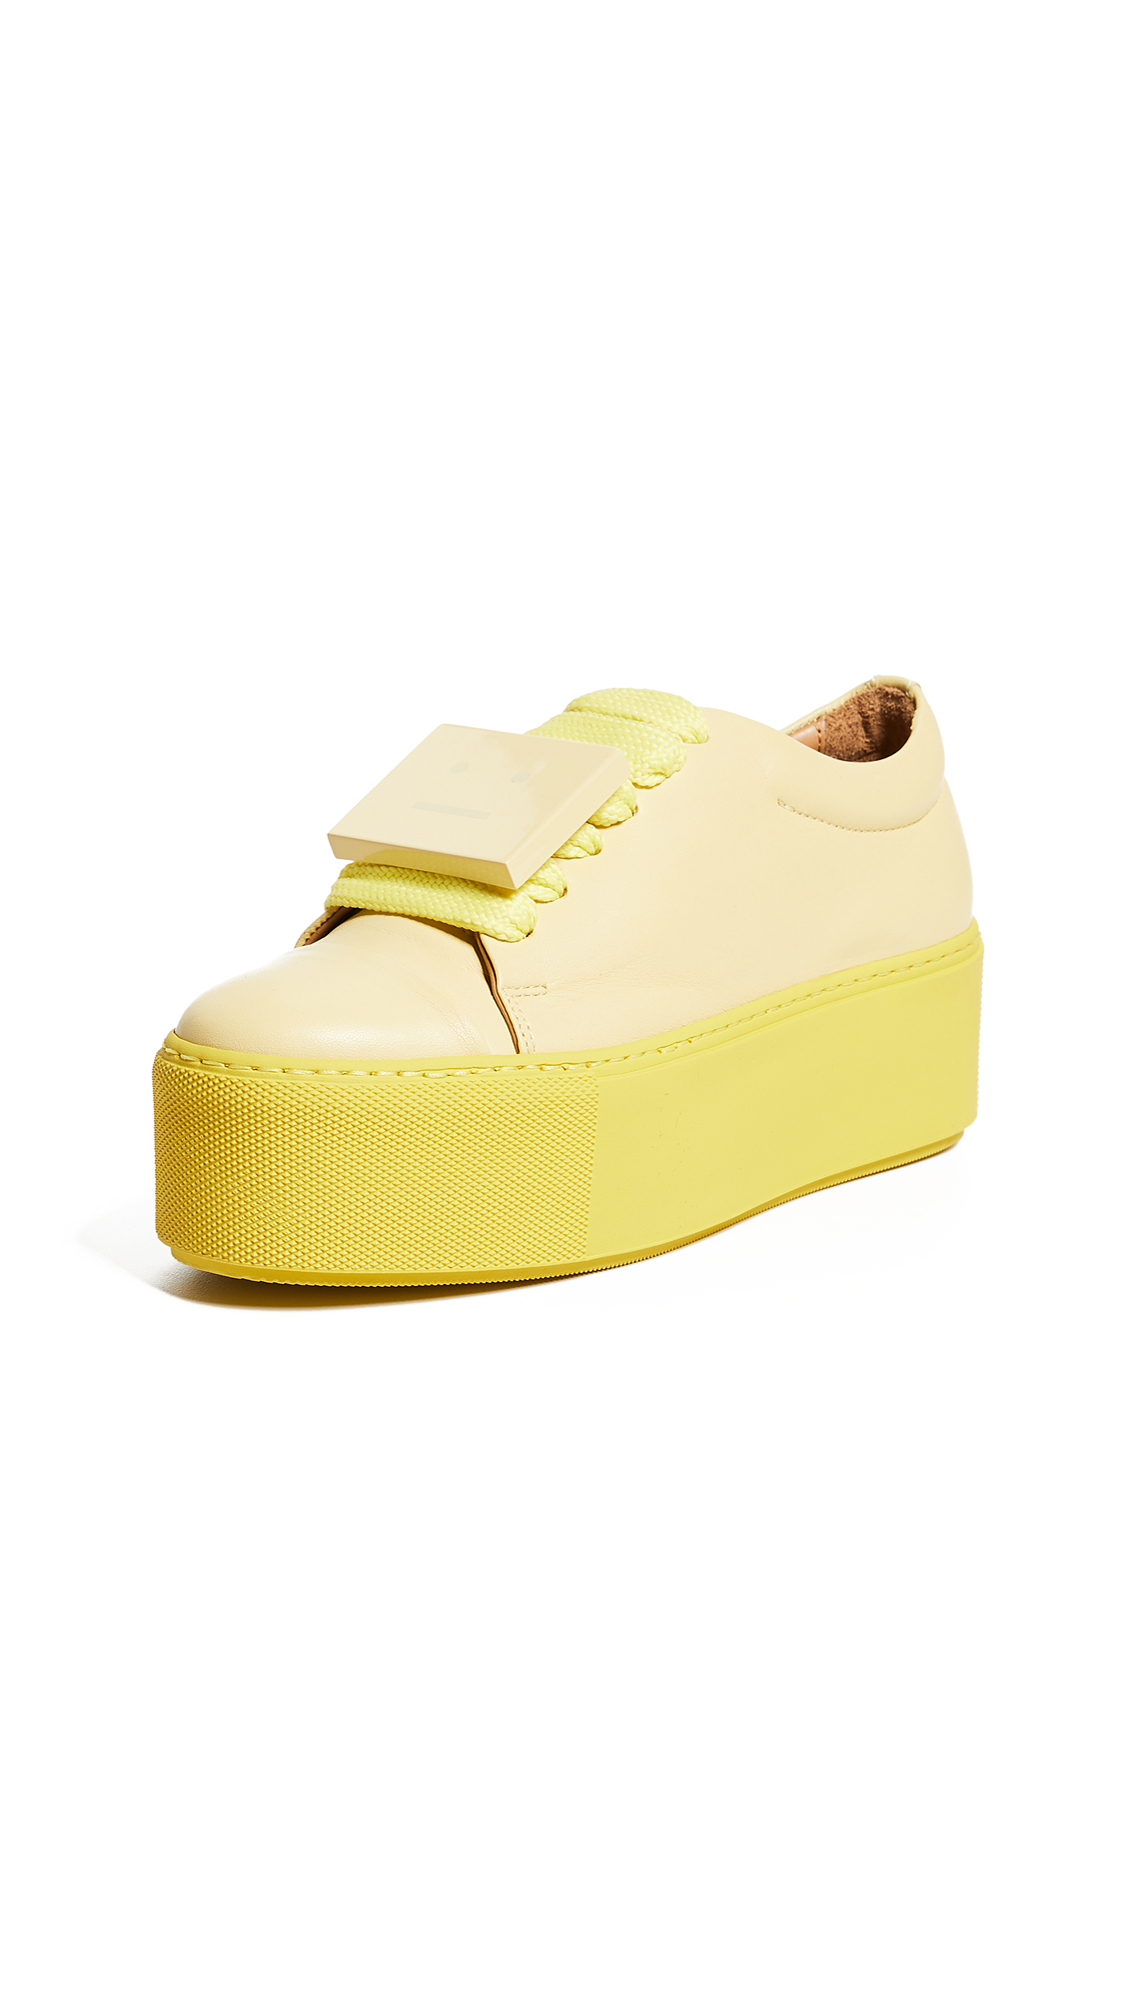 Acne Studios Drihanna Platoform Sneakers - Solid Pale Yellow